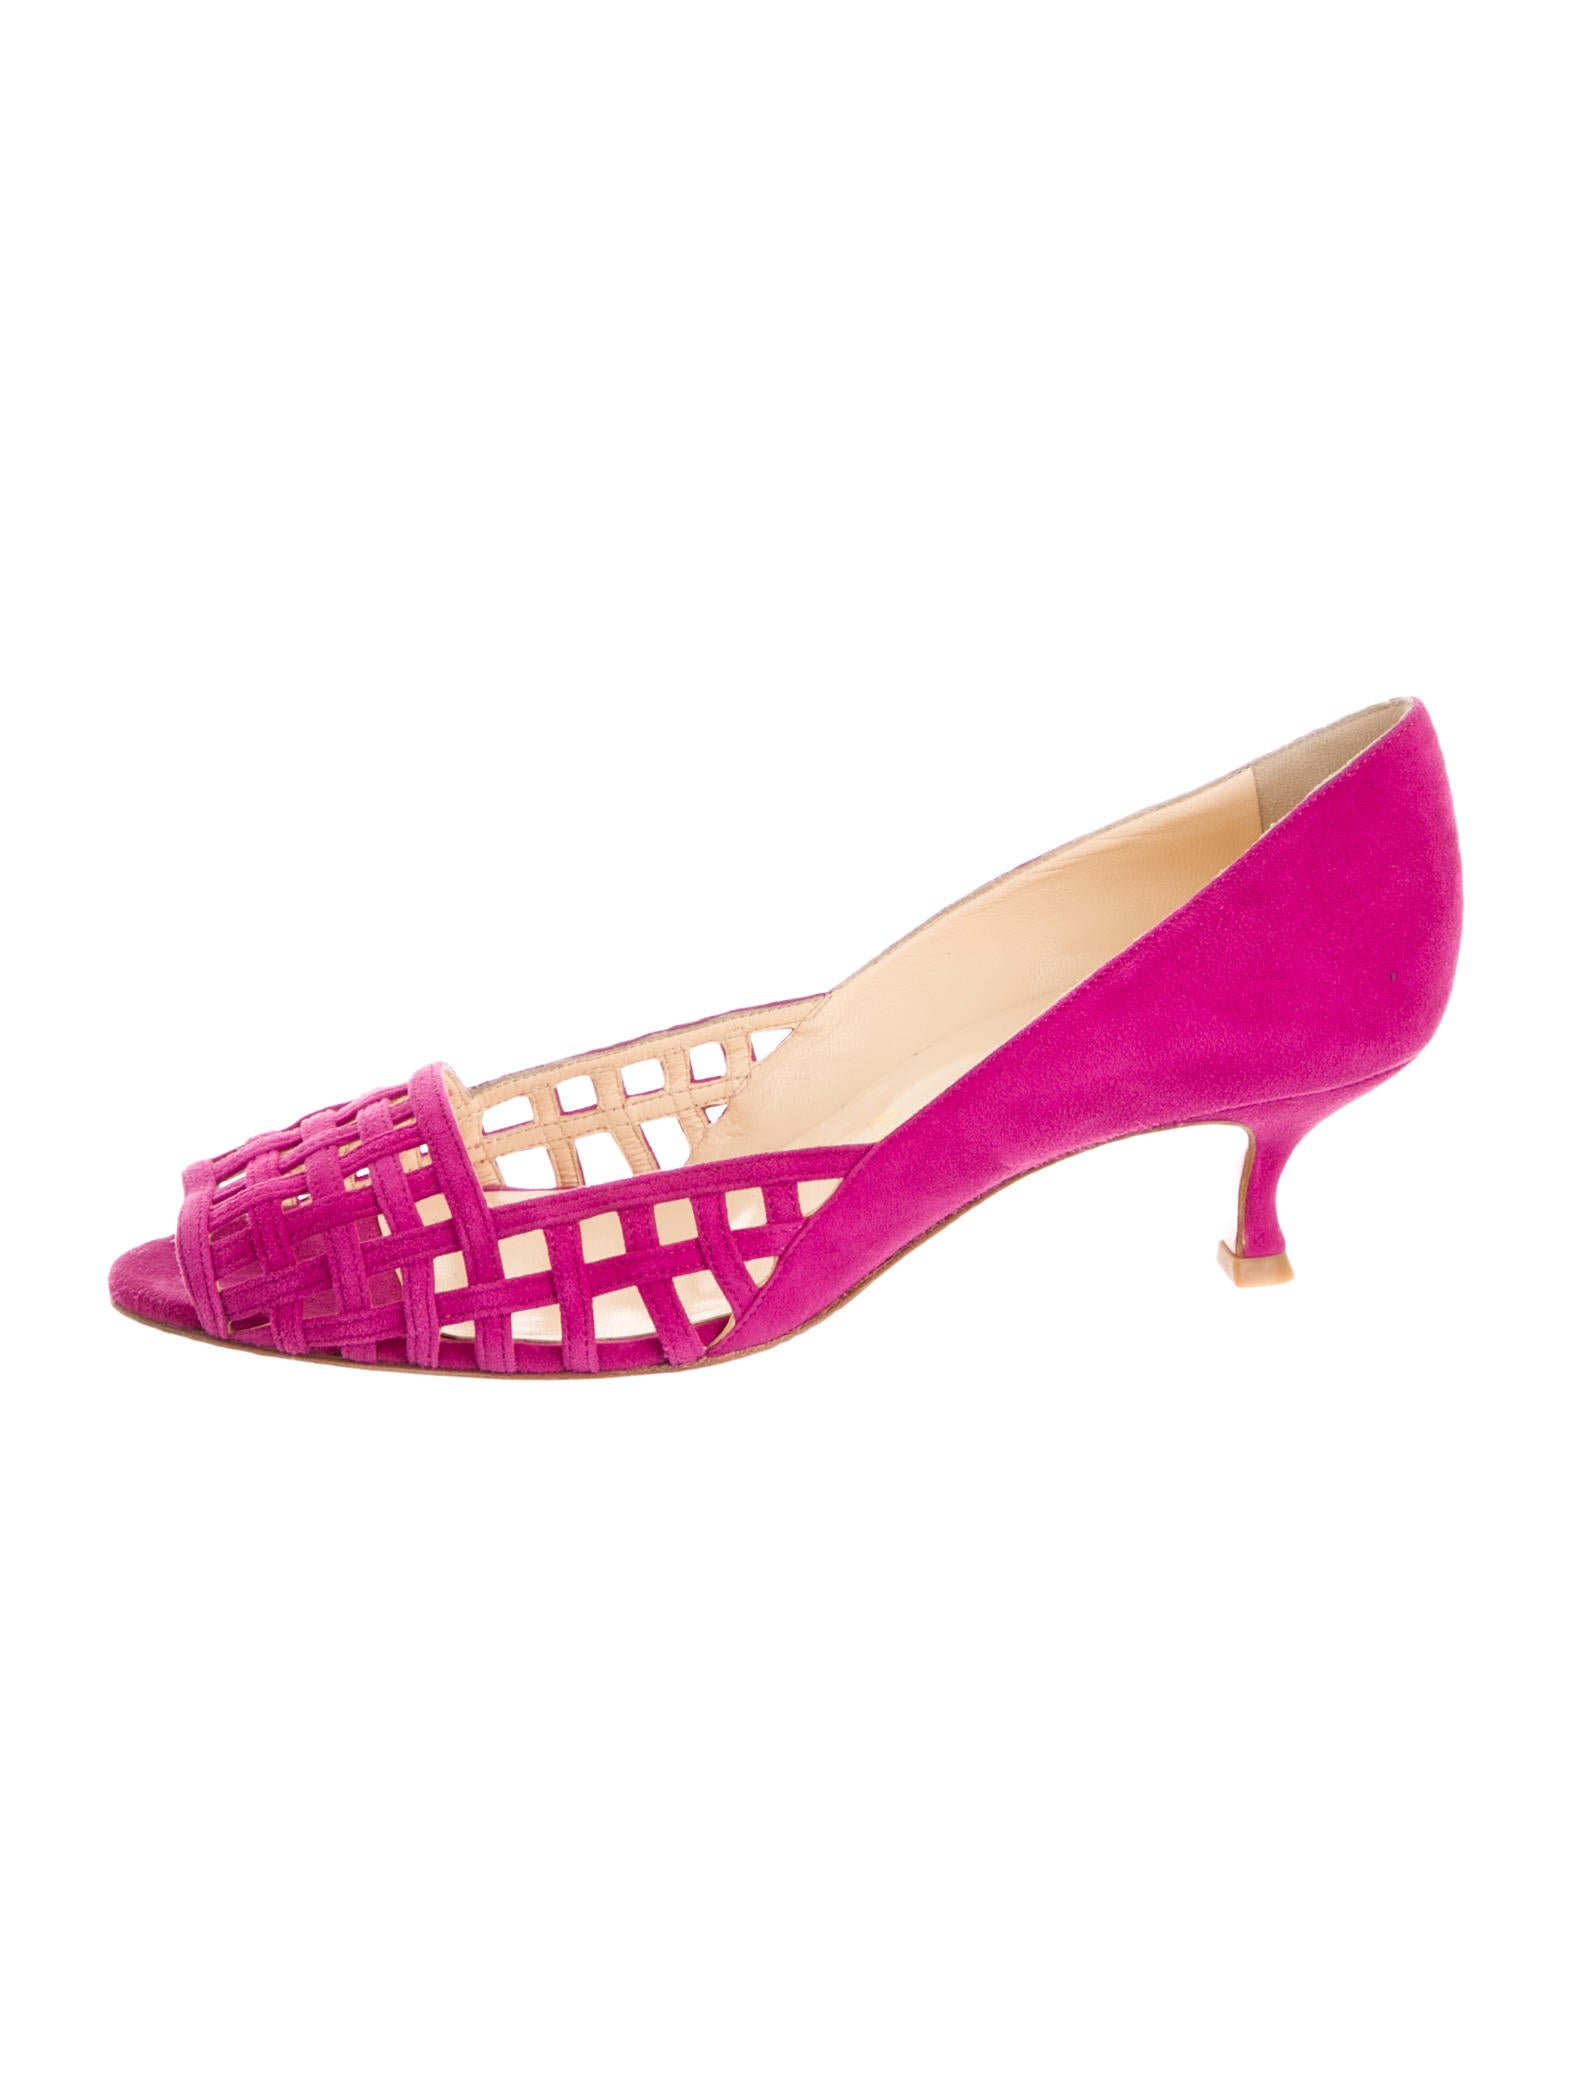 red bottom sneakers for men - christian louboutin peep-toe pumps Magenta suede cutouts | The ...